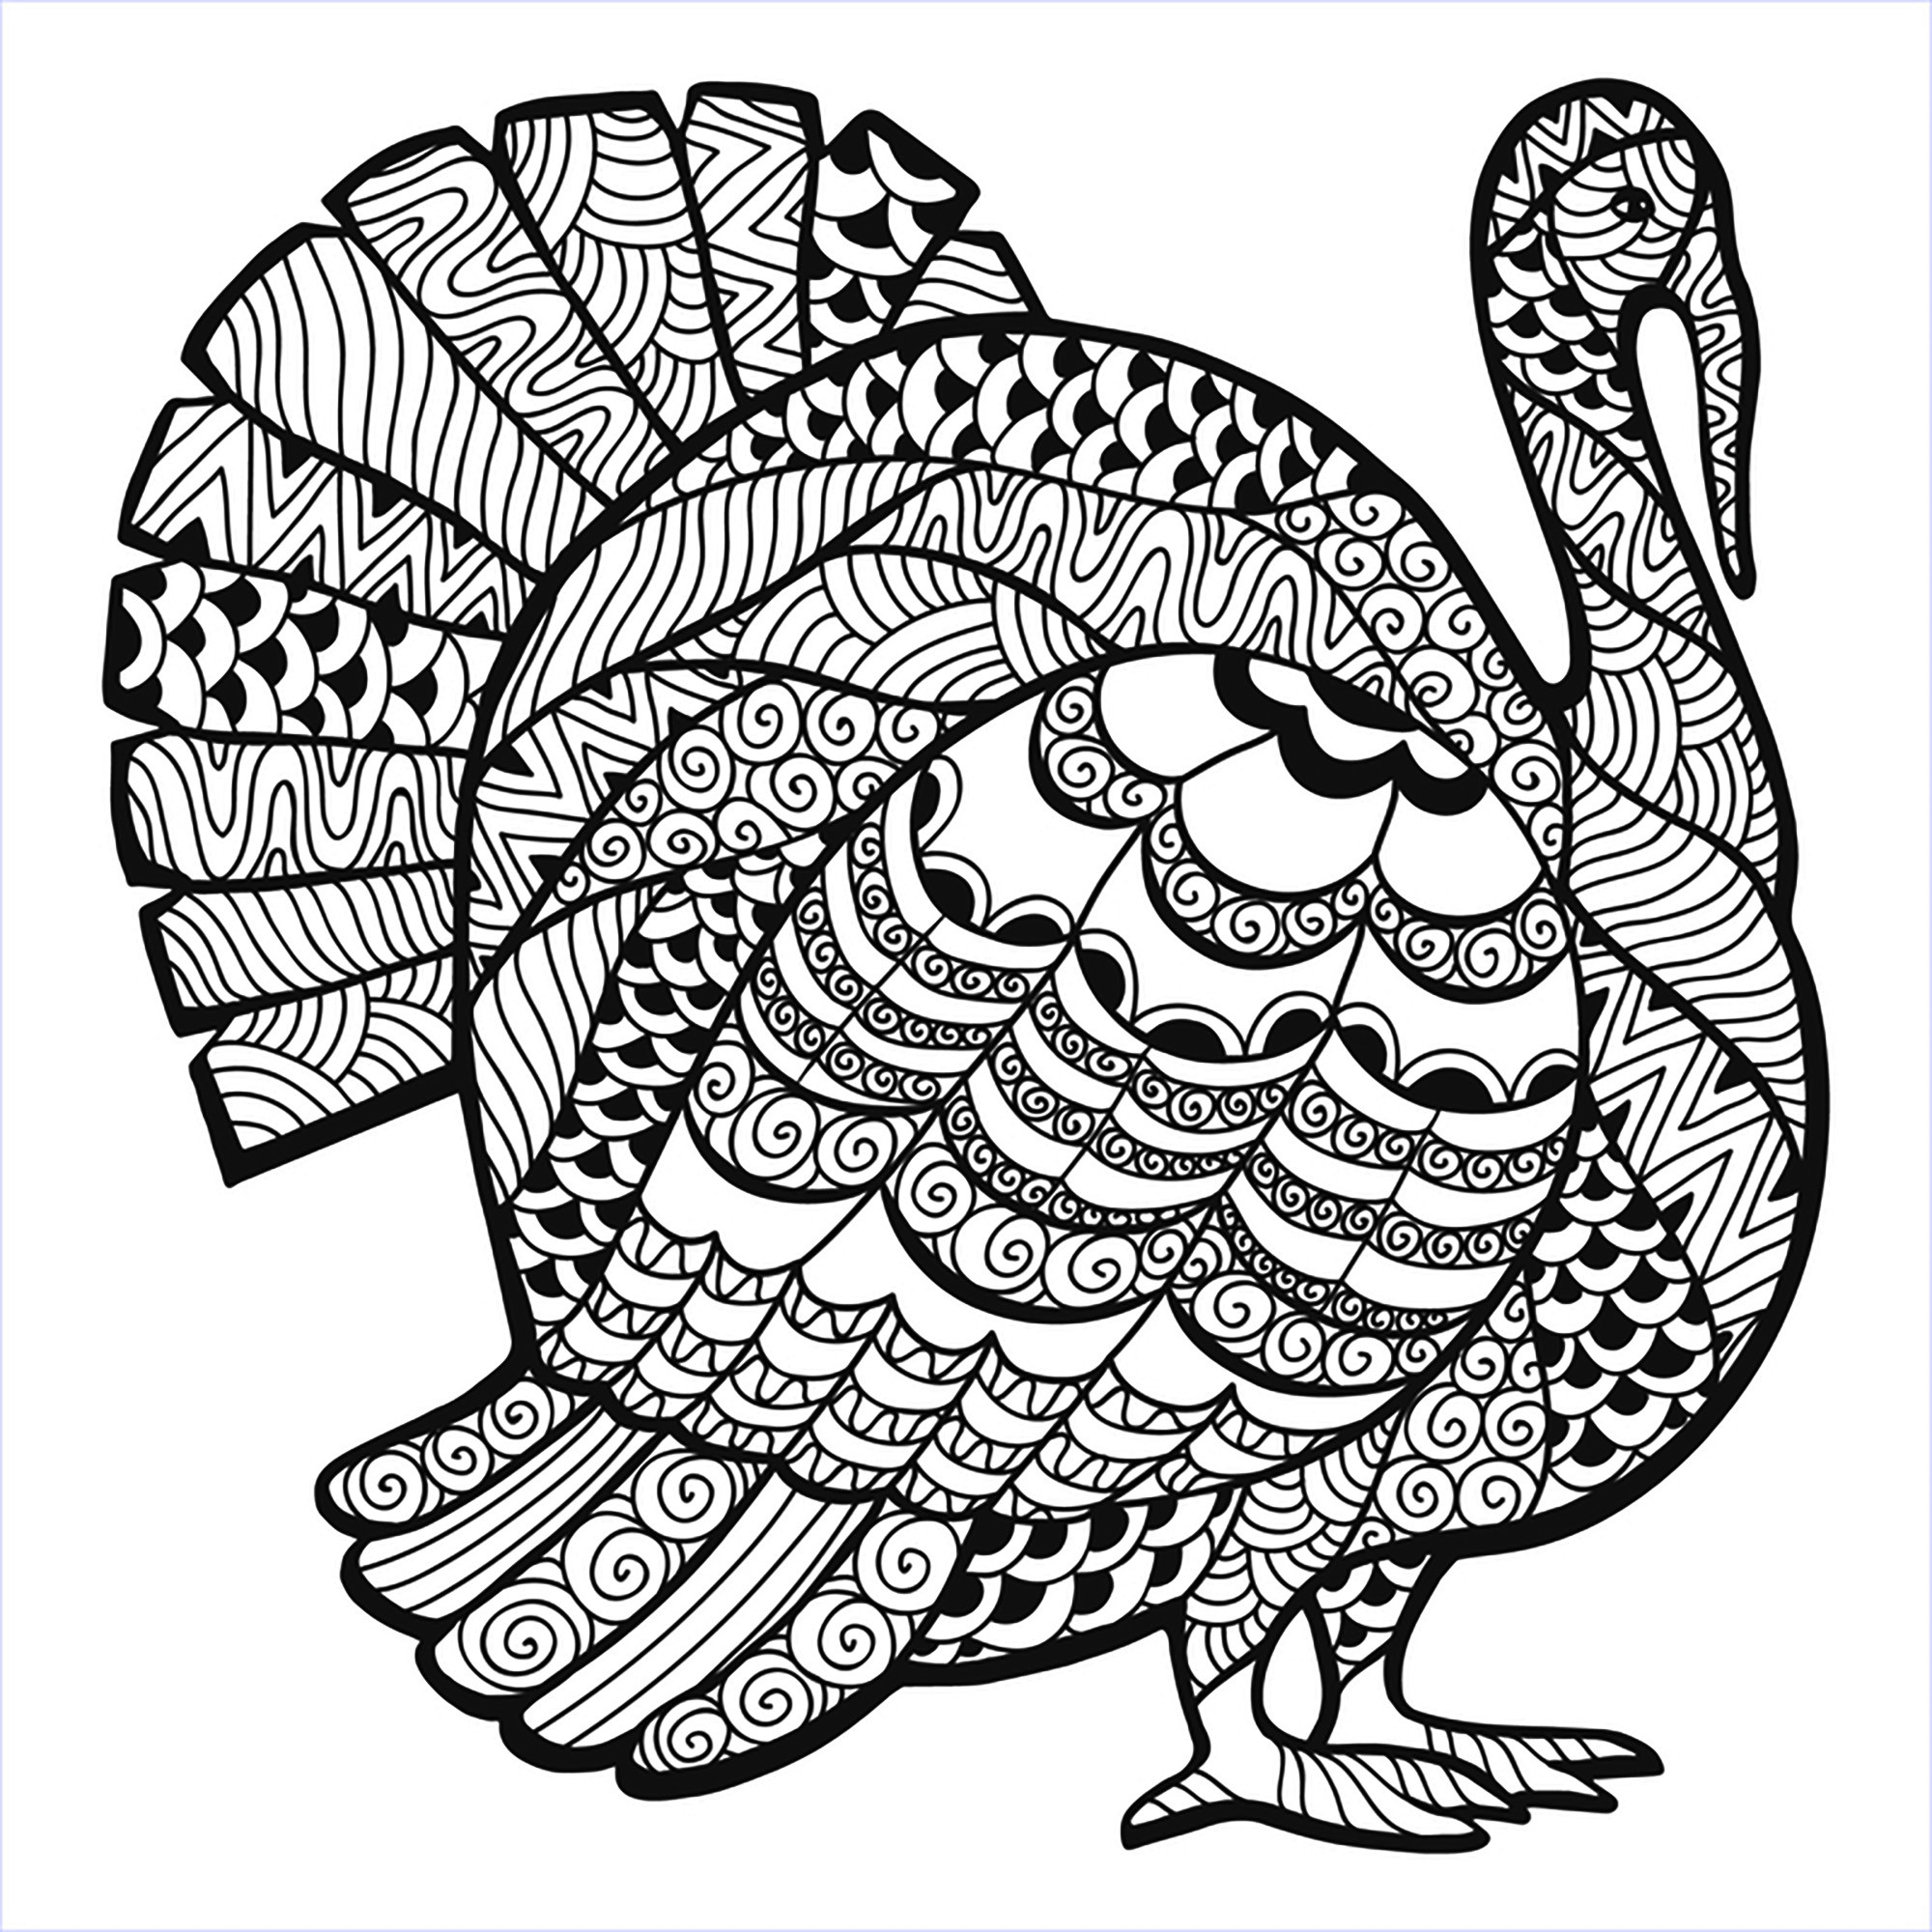 Thanksgiving Coloring Pages For Adults Free  Thanksgiving Coloring Pages For Adults to and